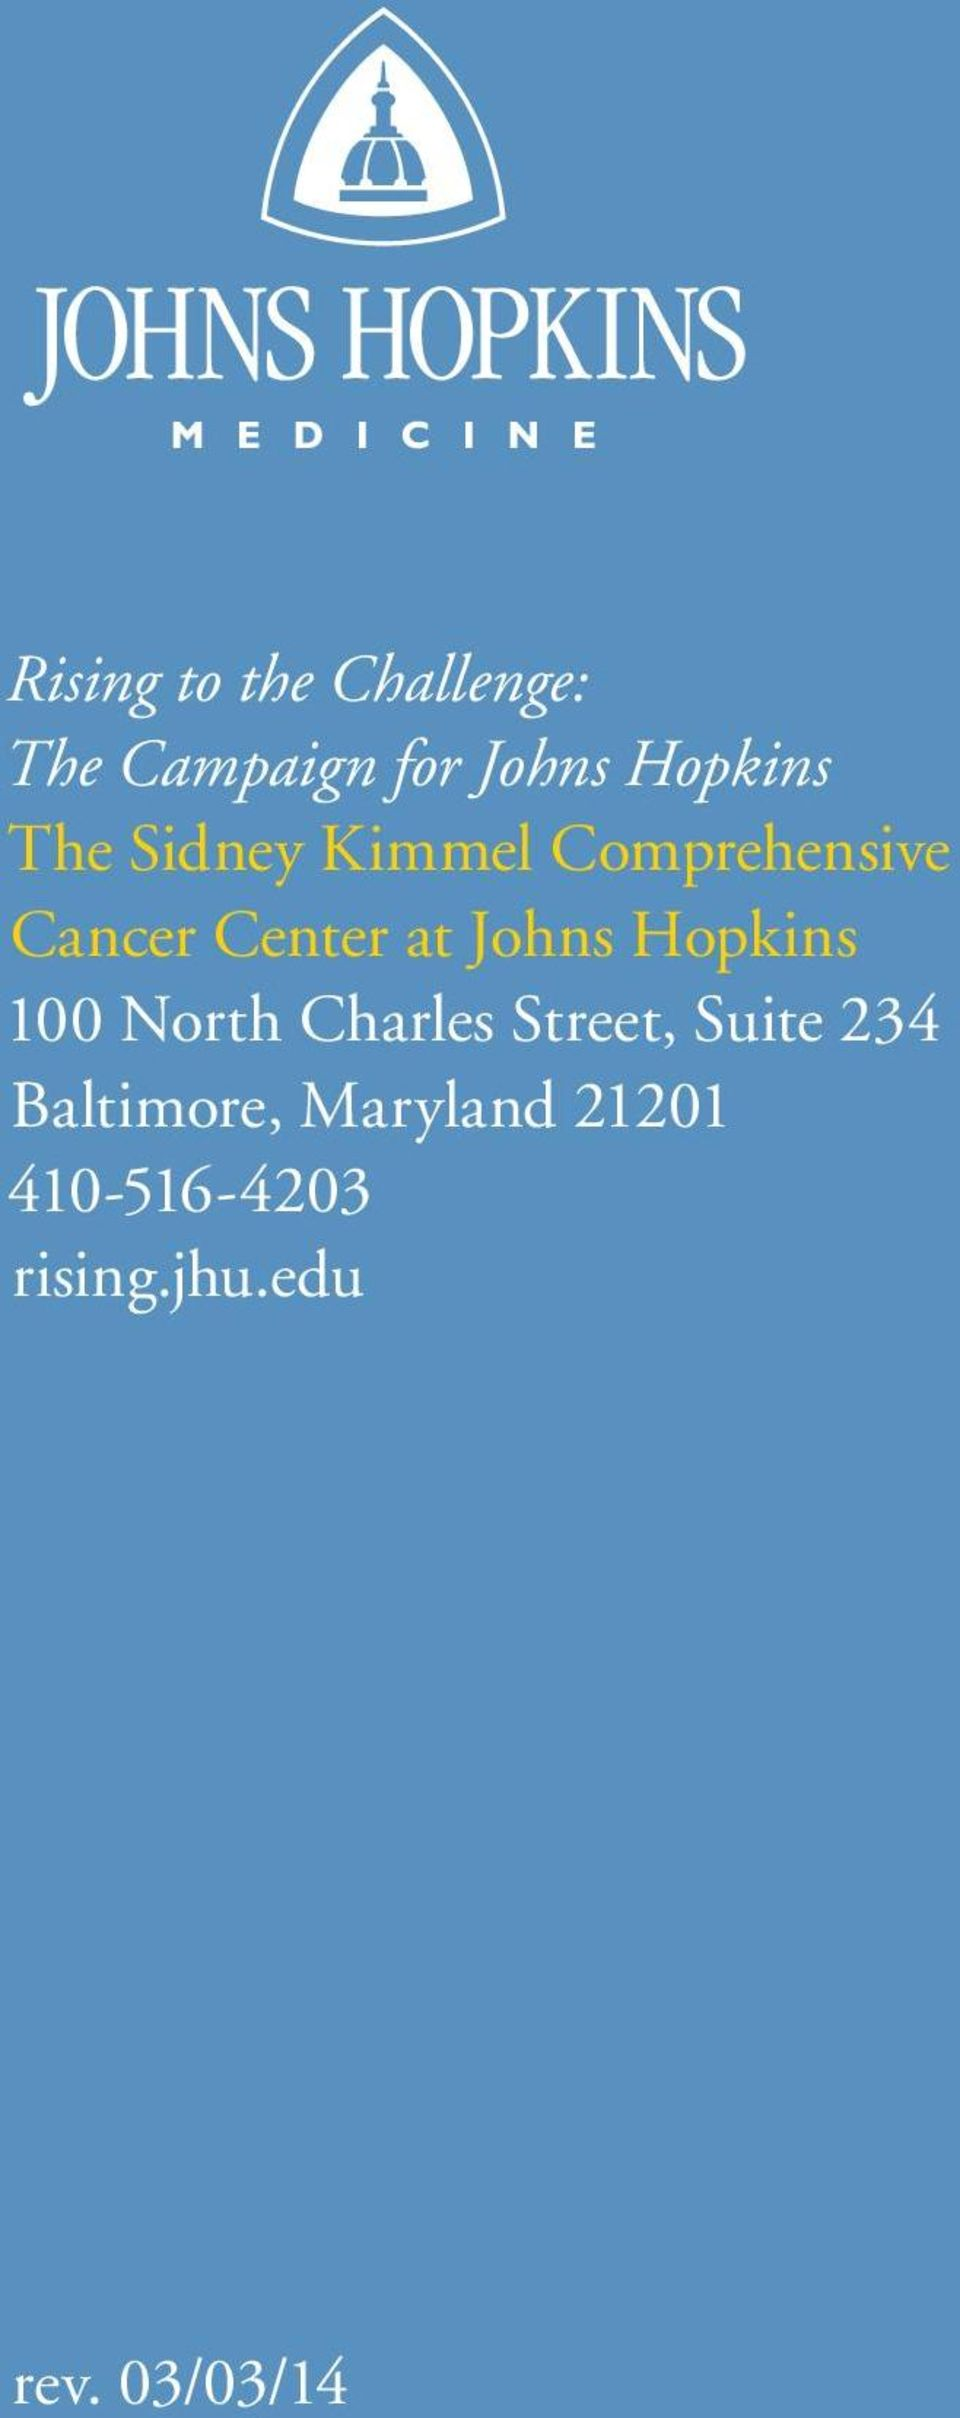 Hopkins 100 North Charles Street, Suite 234 Baltimore,